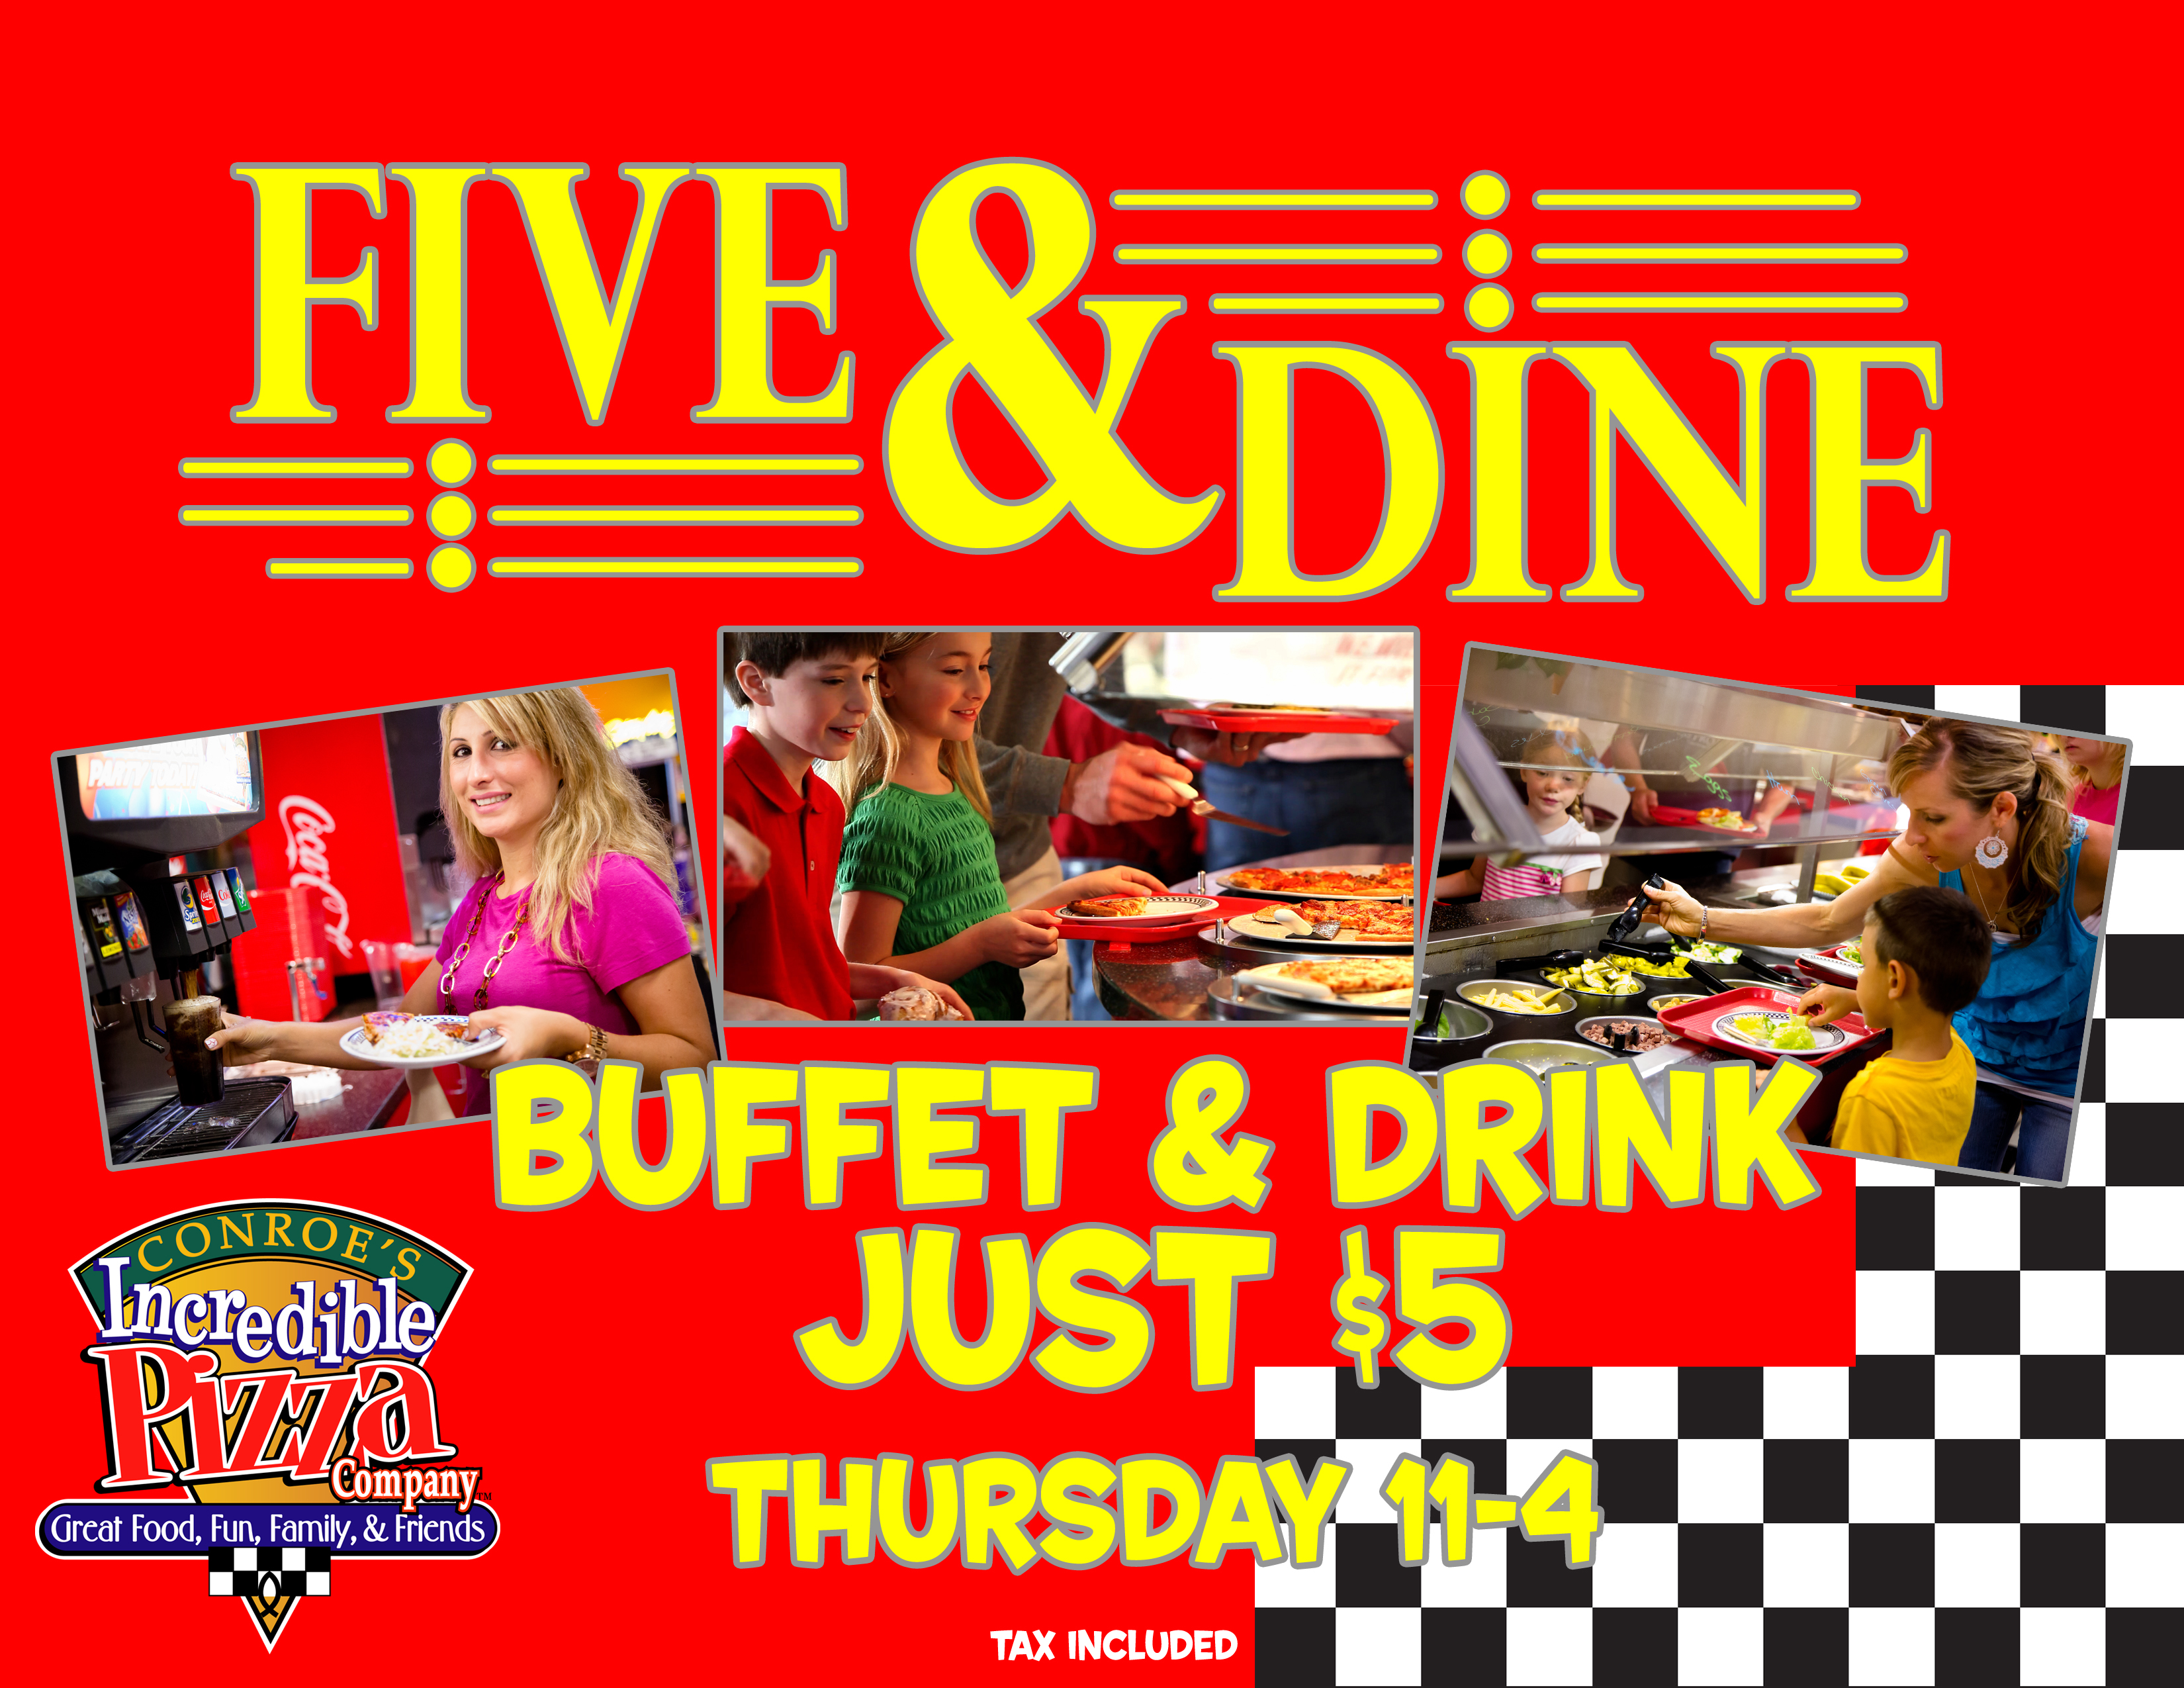 Tuesday. Senior Tuesday It's time to socialize! Our Senior guests (age 55 years +) enjoy the unlimited buffet and drink for just $ all day long.